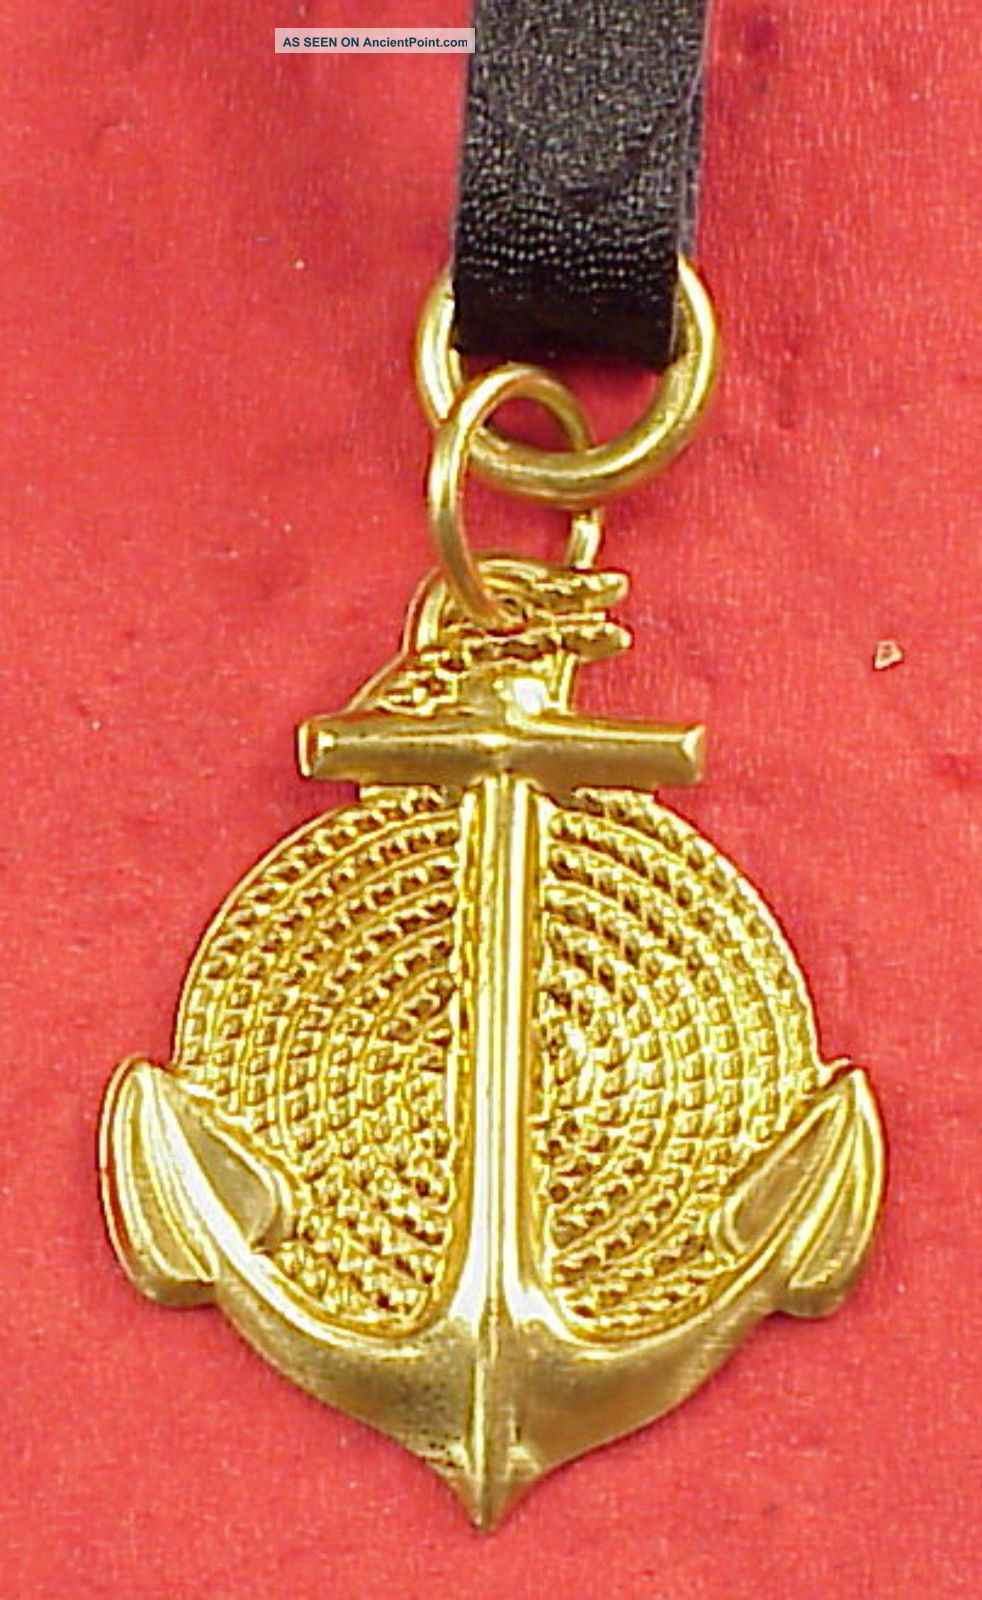 Vintage Brass Ships Anchor Coiled Rope 1 1/4in Pocket Watch Fob Or Keychain Anchors photo